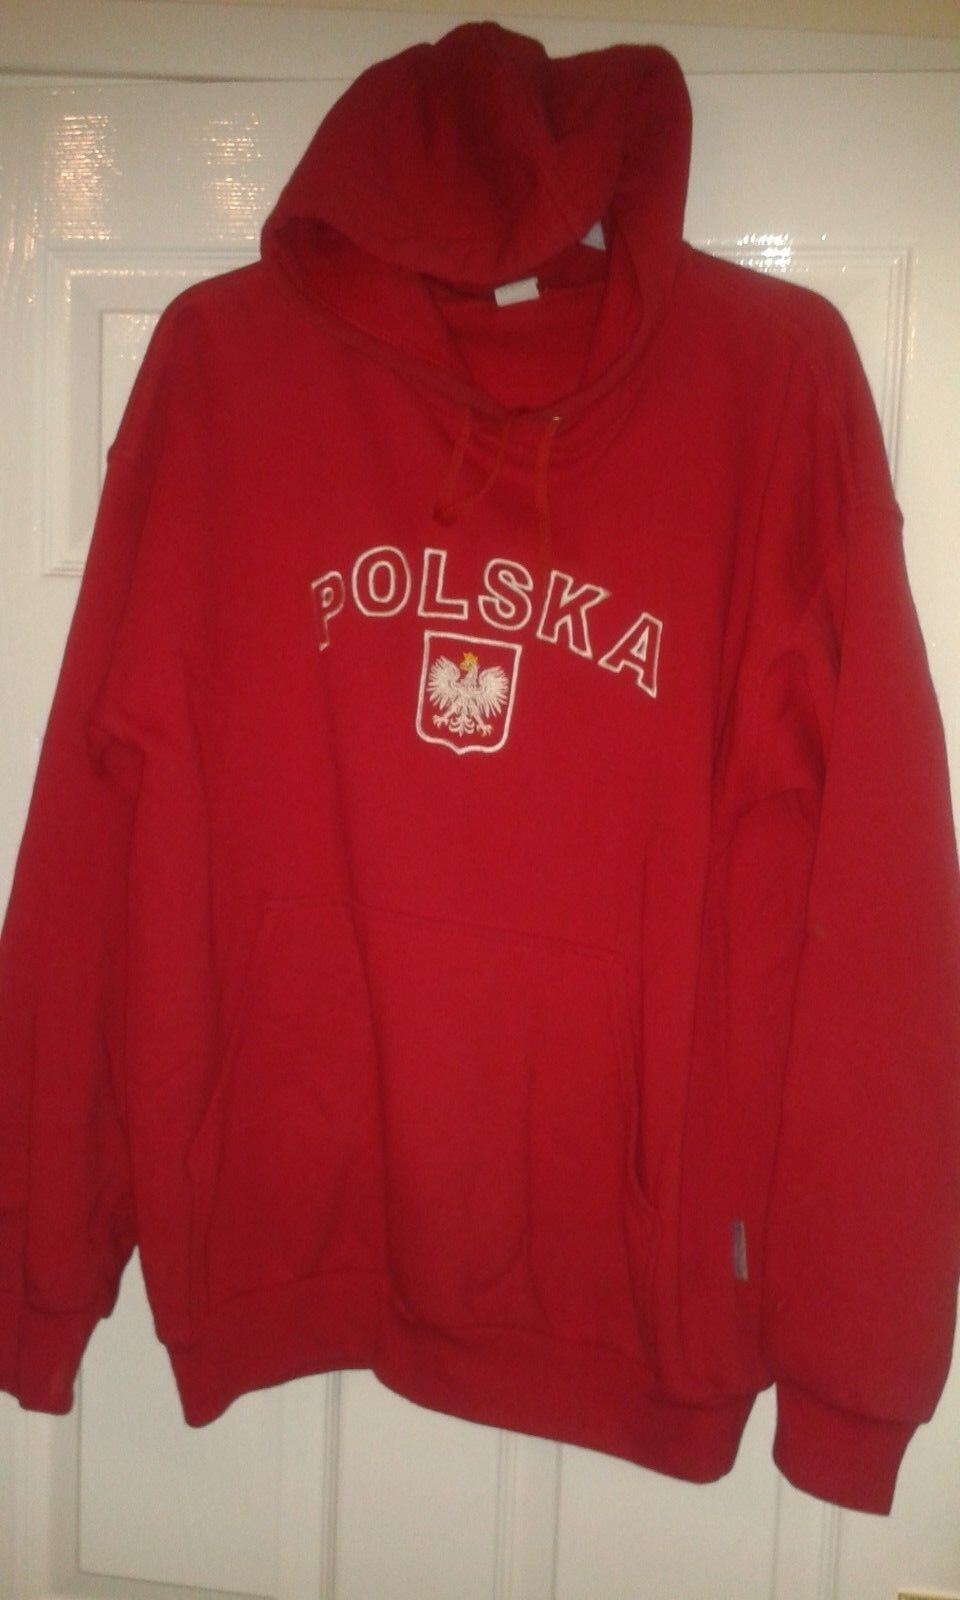 Mens Hooded Jumper - Poland Hoodie - Polska - Red With White - Size L